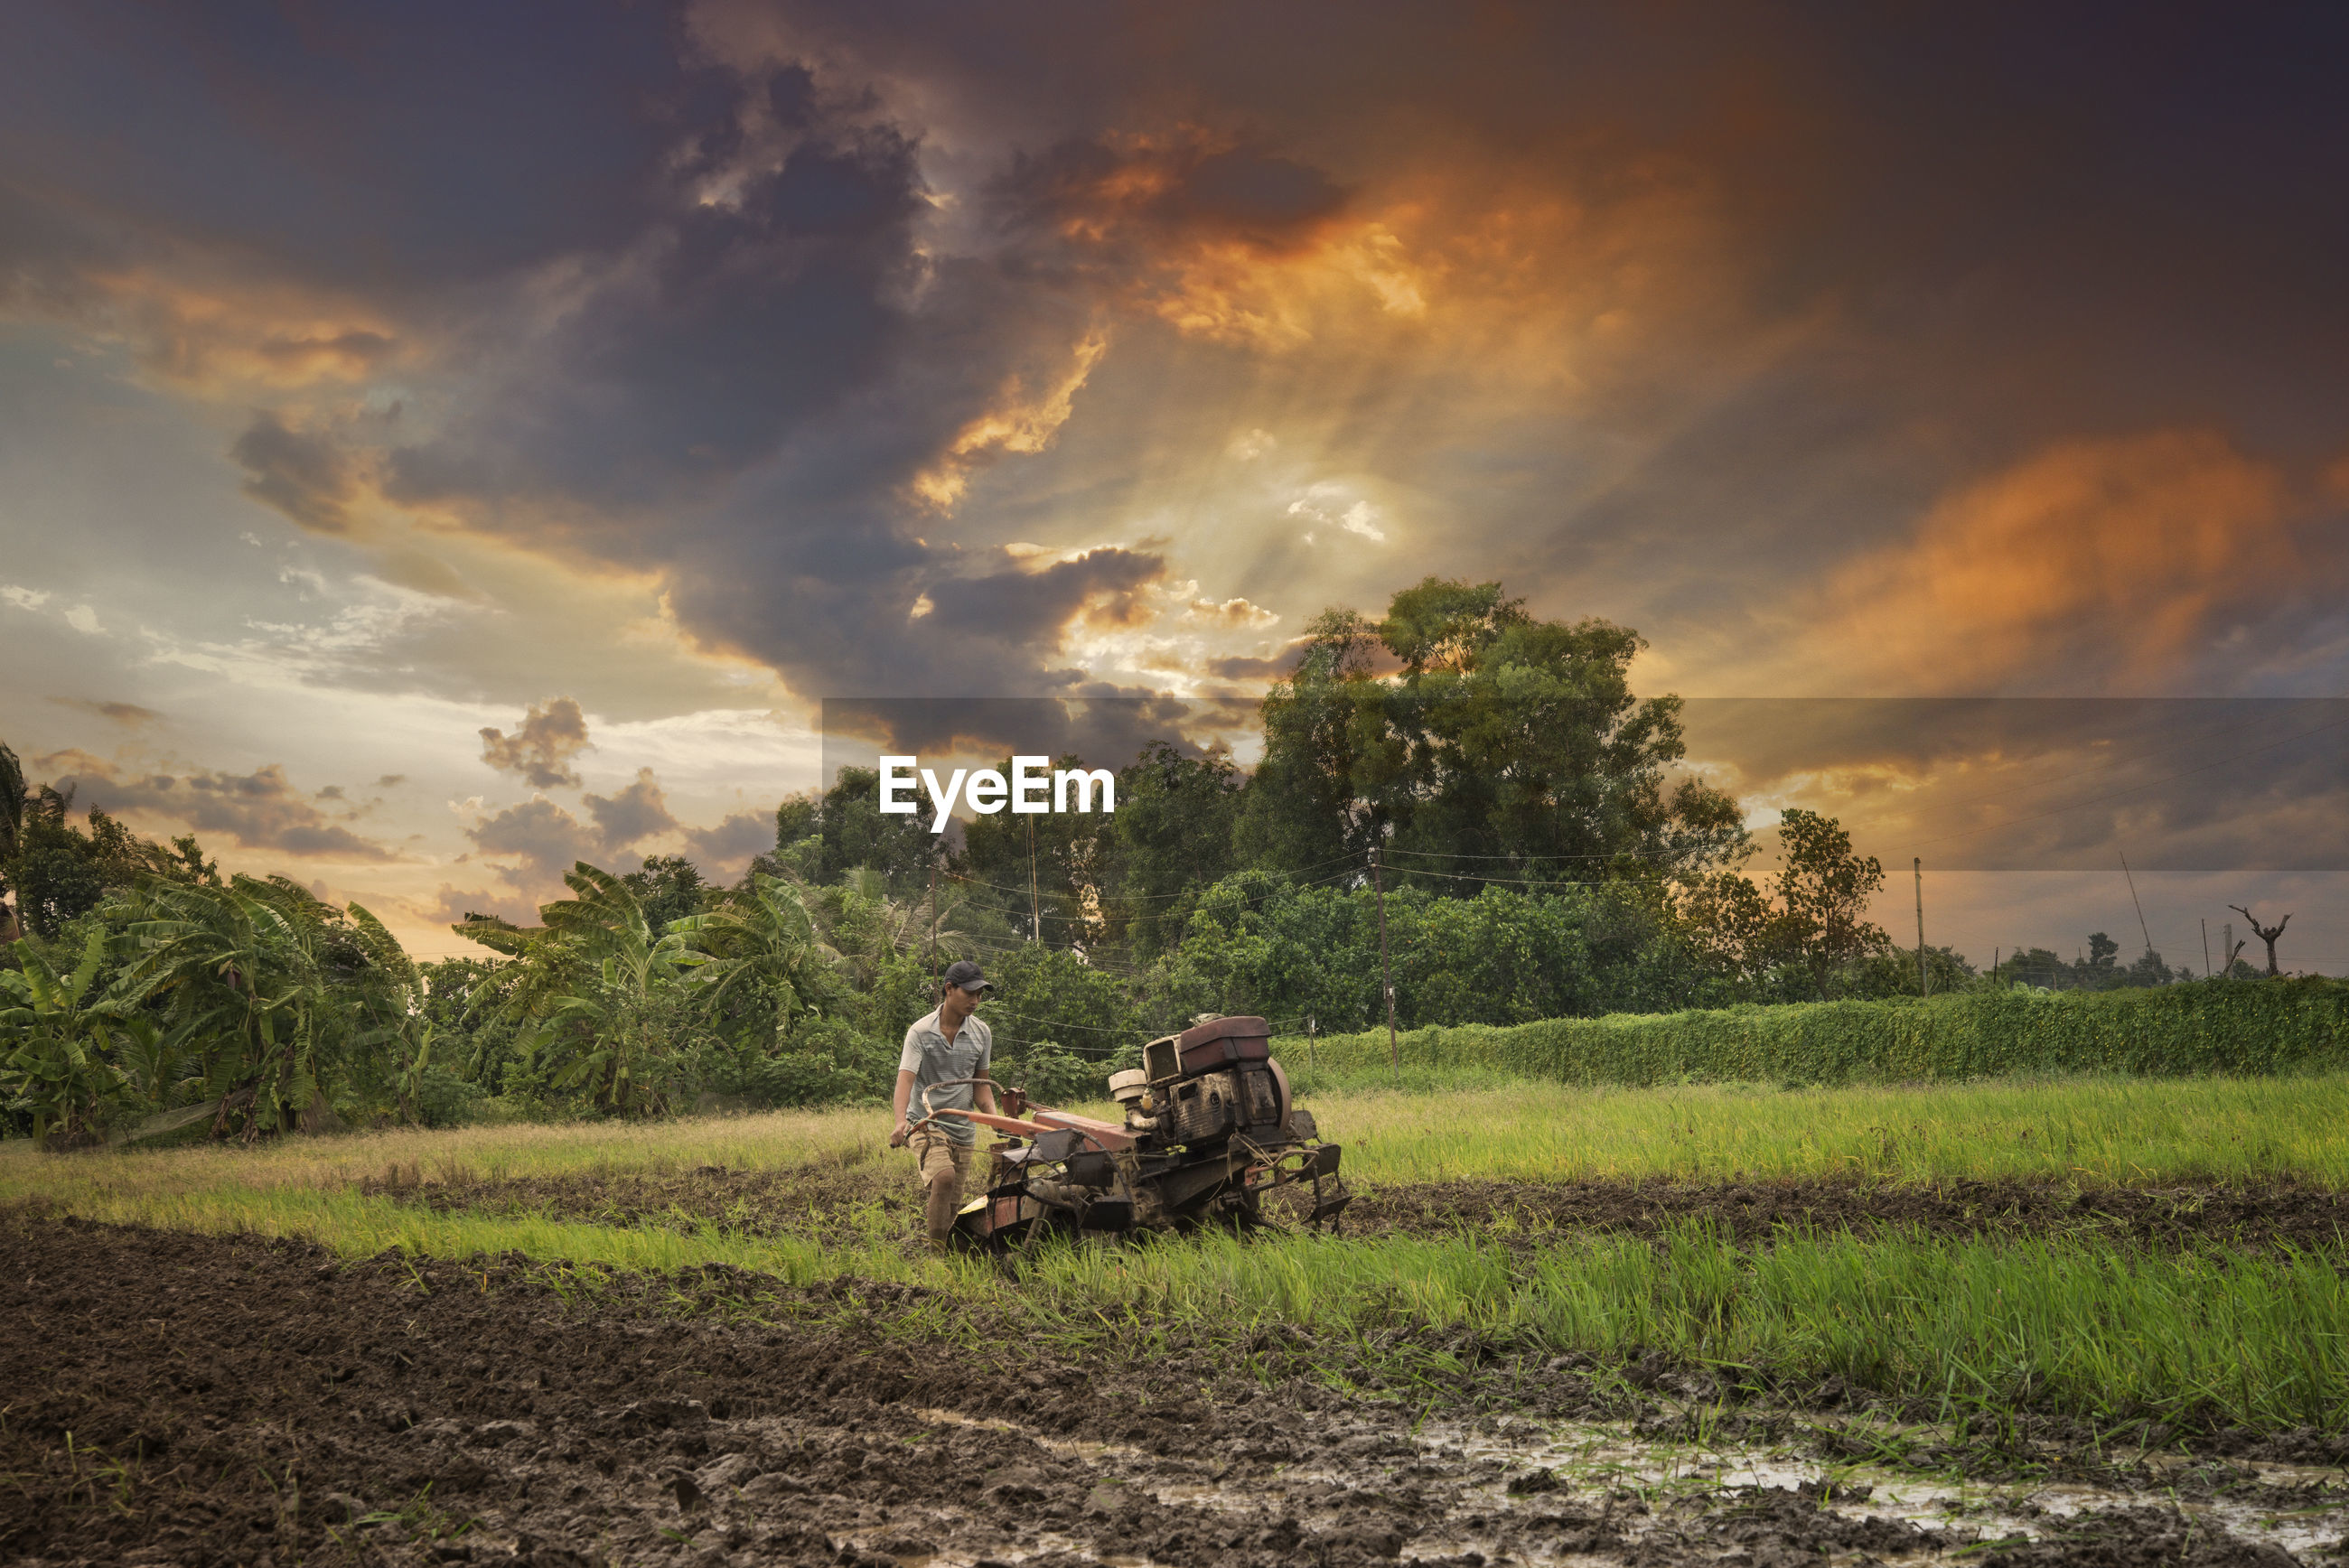 Farmer working at agricultural field against sky sunset